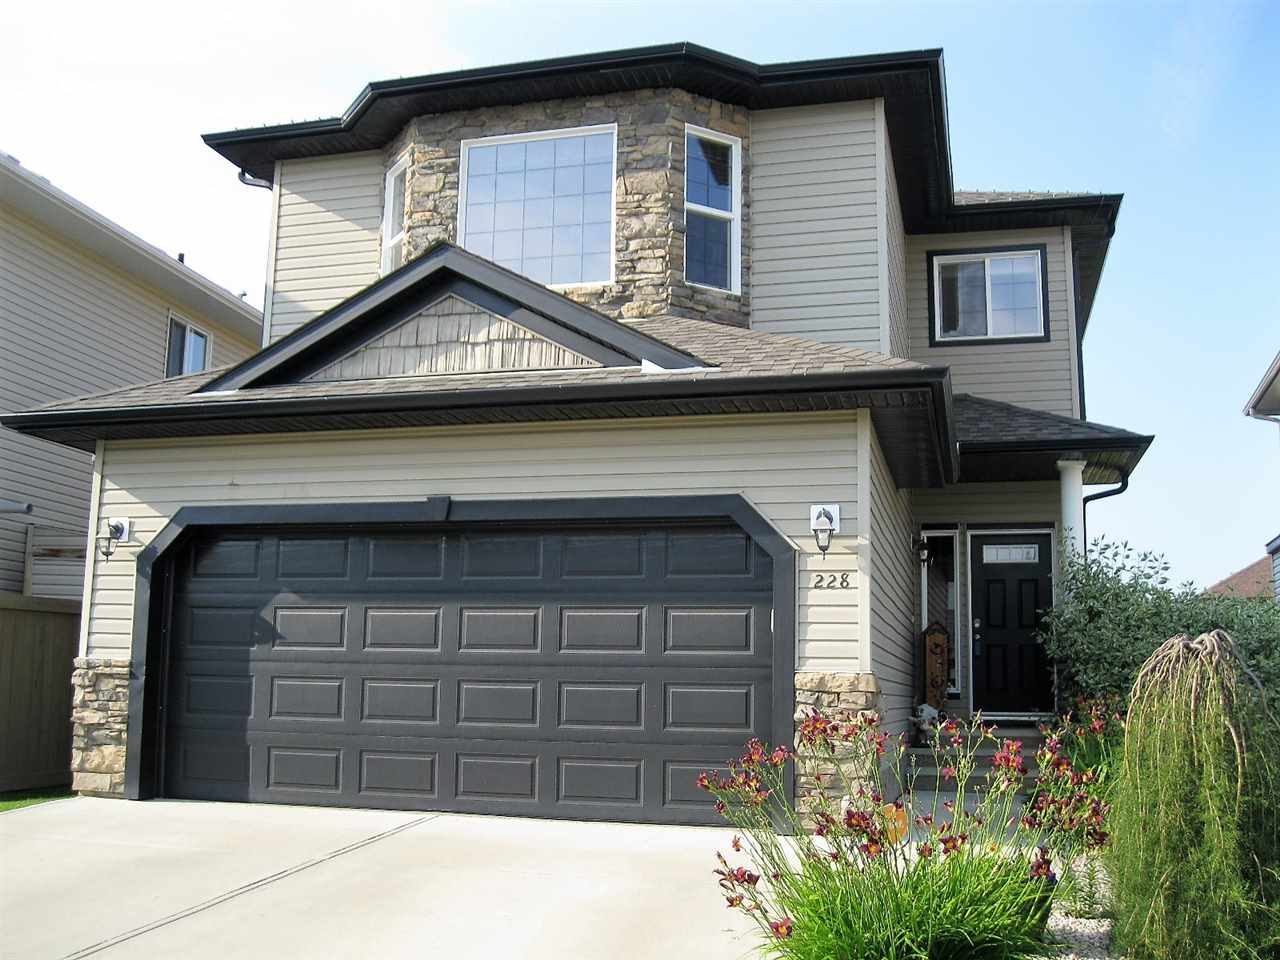 Main Photo: 228 Harvest Ridge Drive: Spruce Grove House for sale : MLS® # E4077944